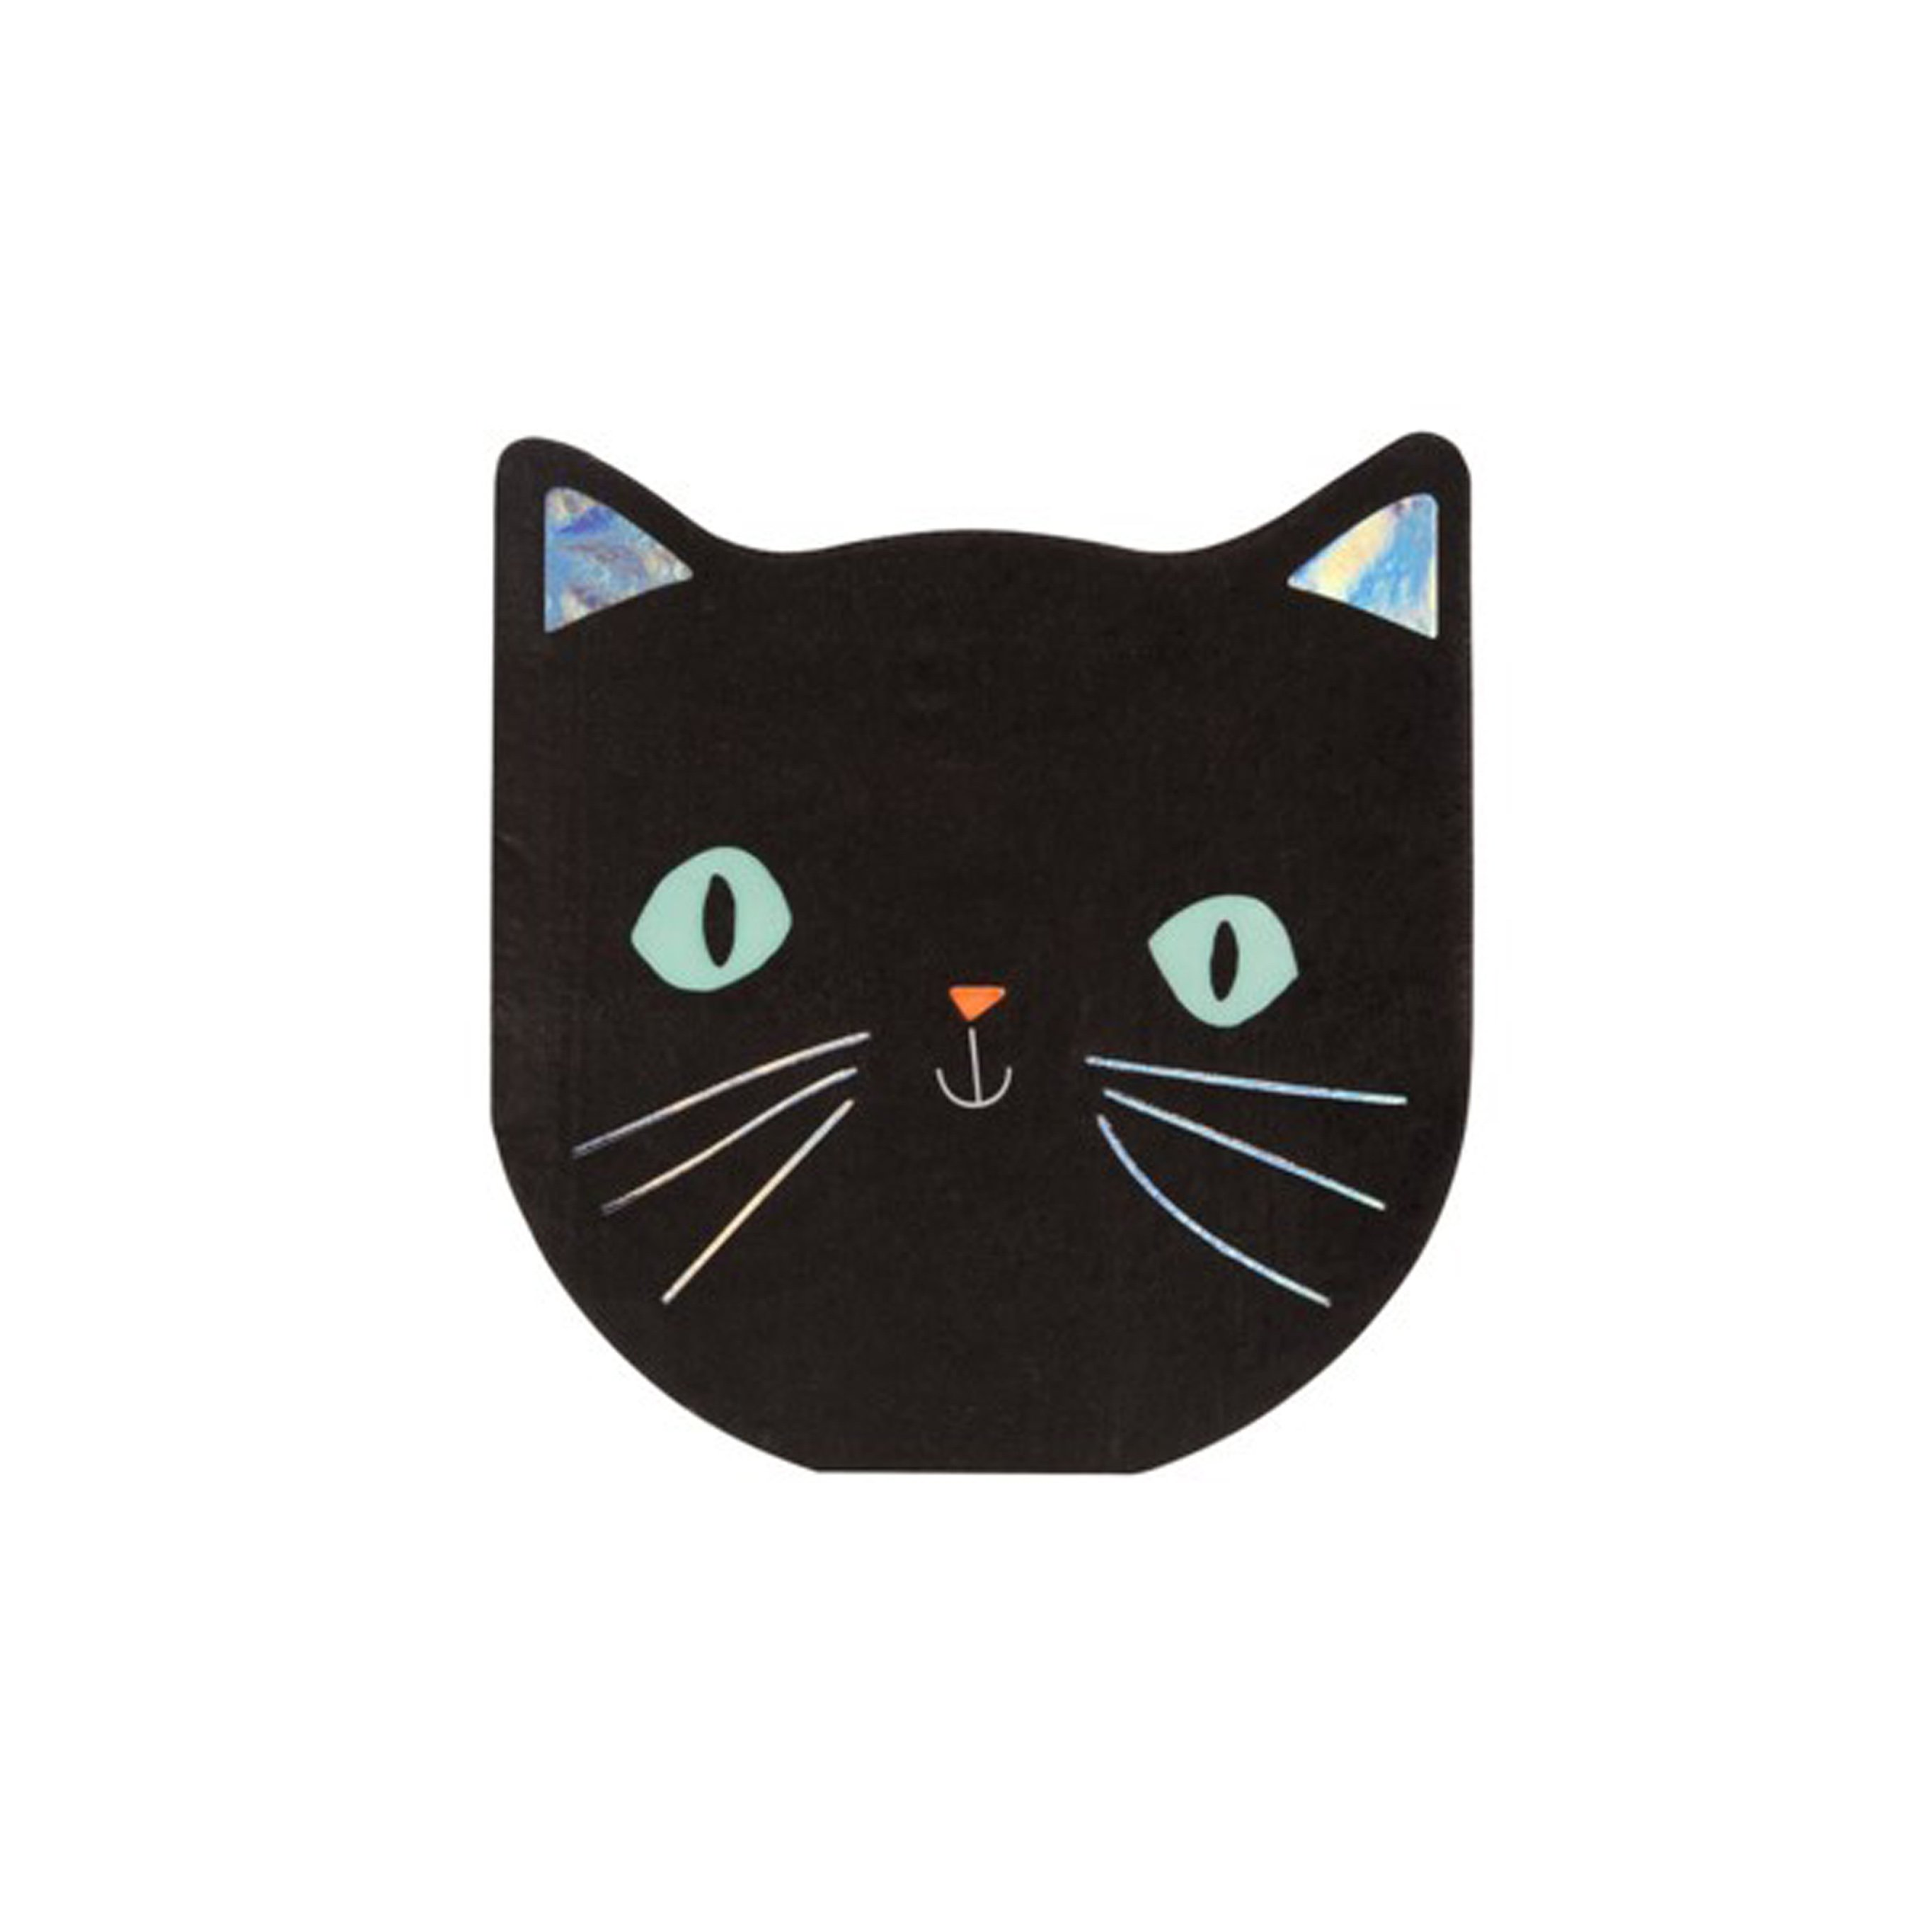 BUY ME / NEW ITEM $8.99 each Black Cat Paper Napkins - 16 Pack